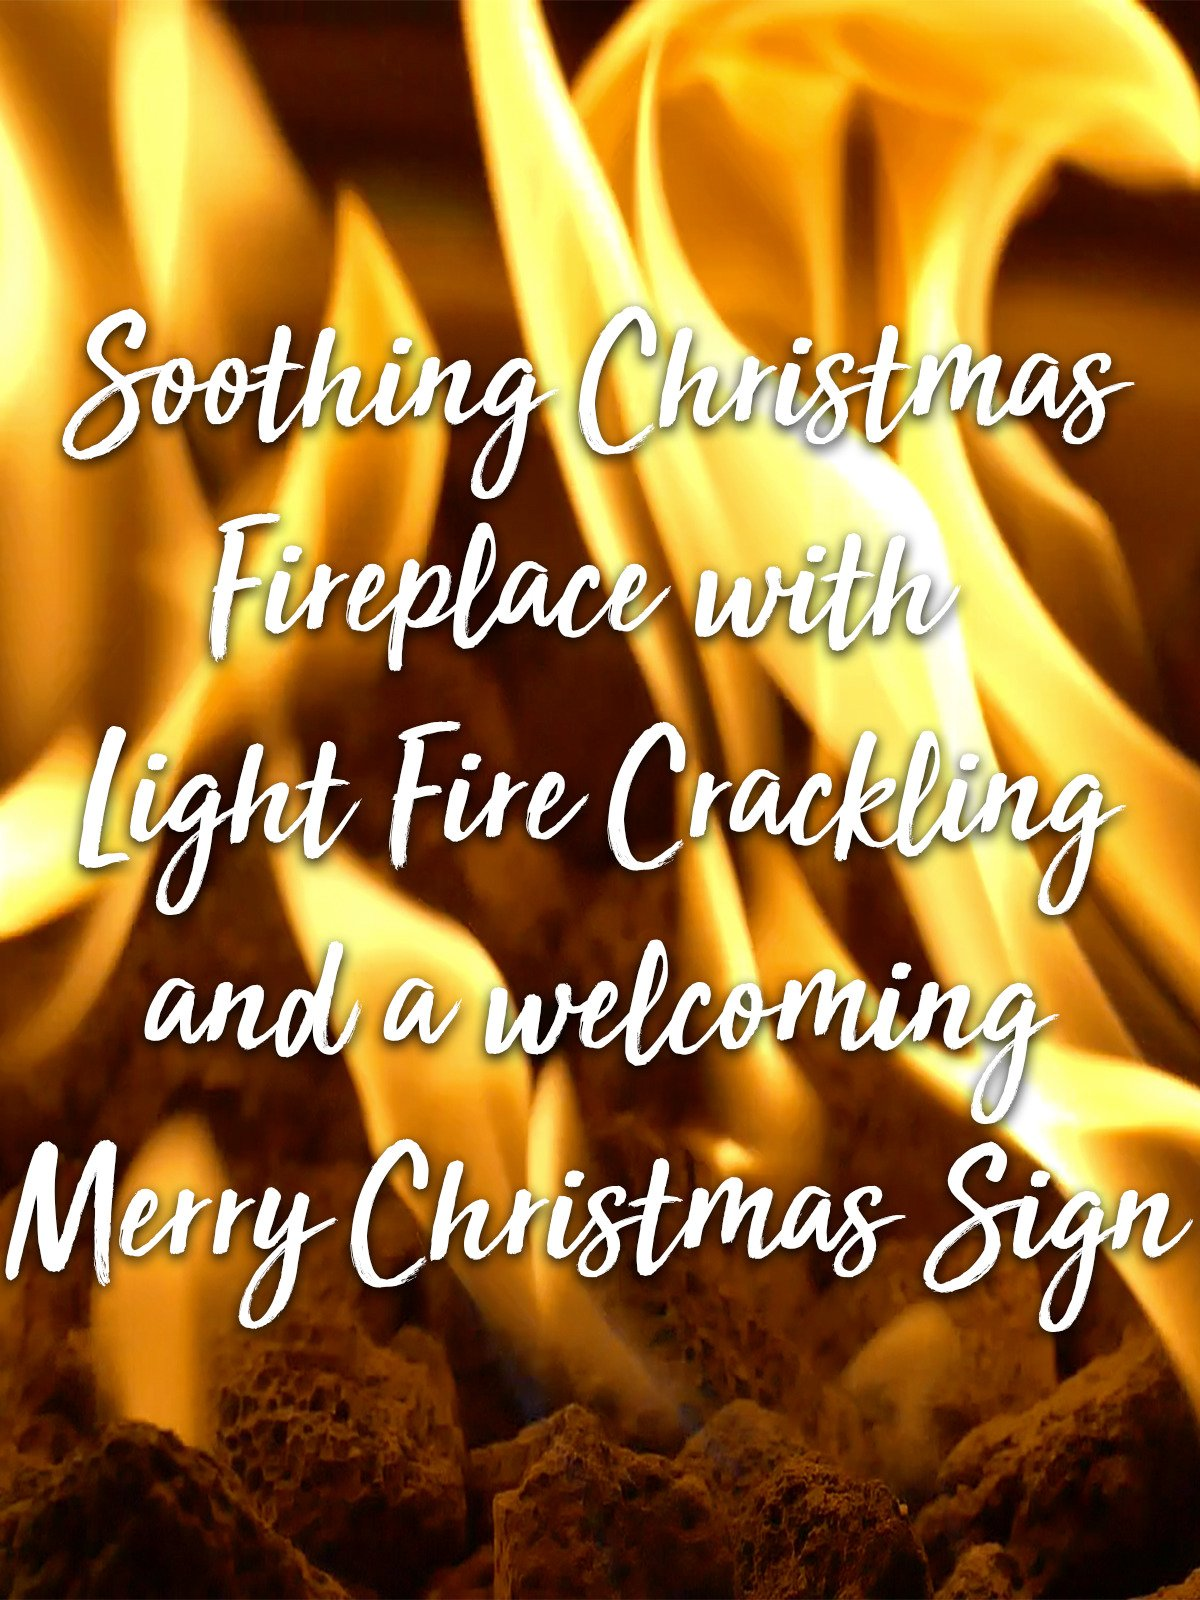 Soothing Christmas Fireplace with Light Fire Crackling and a welcoming Merry Christmas Sign